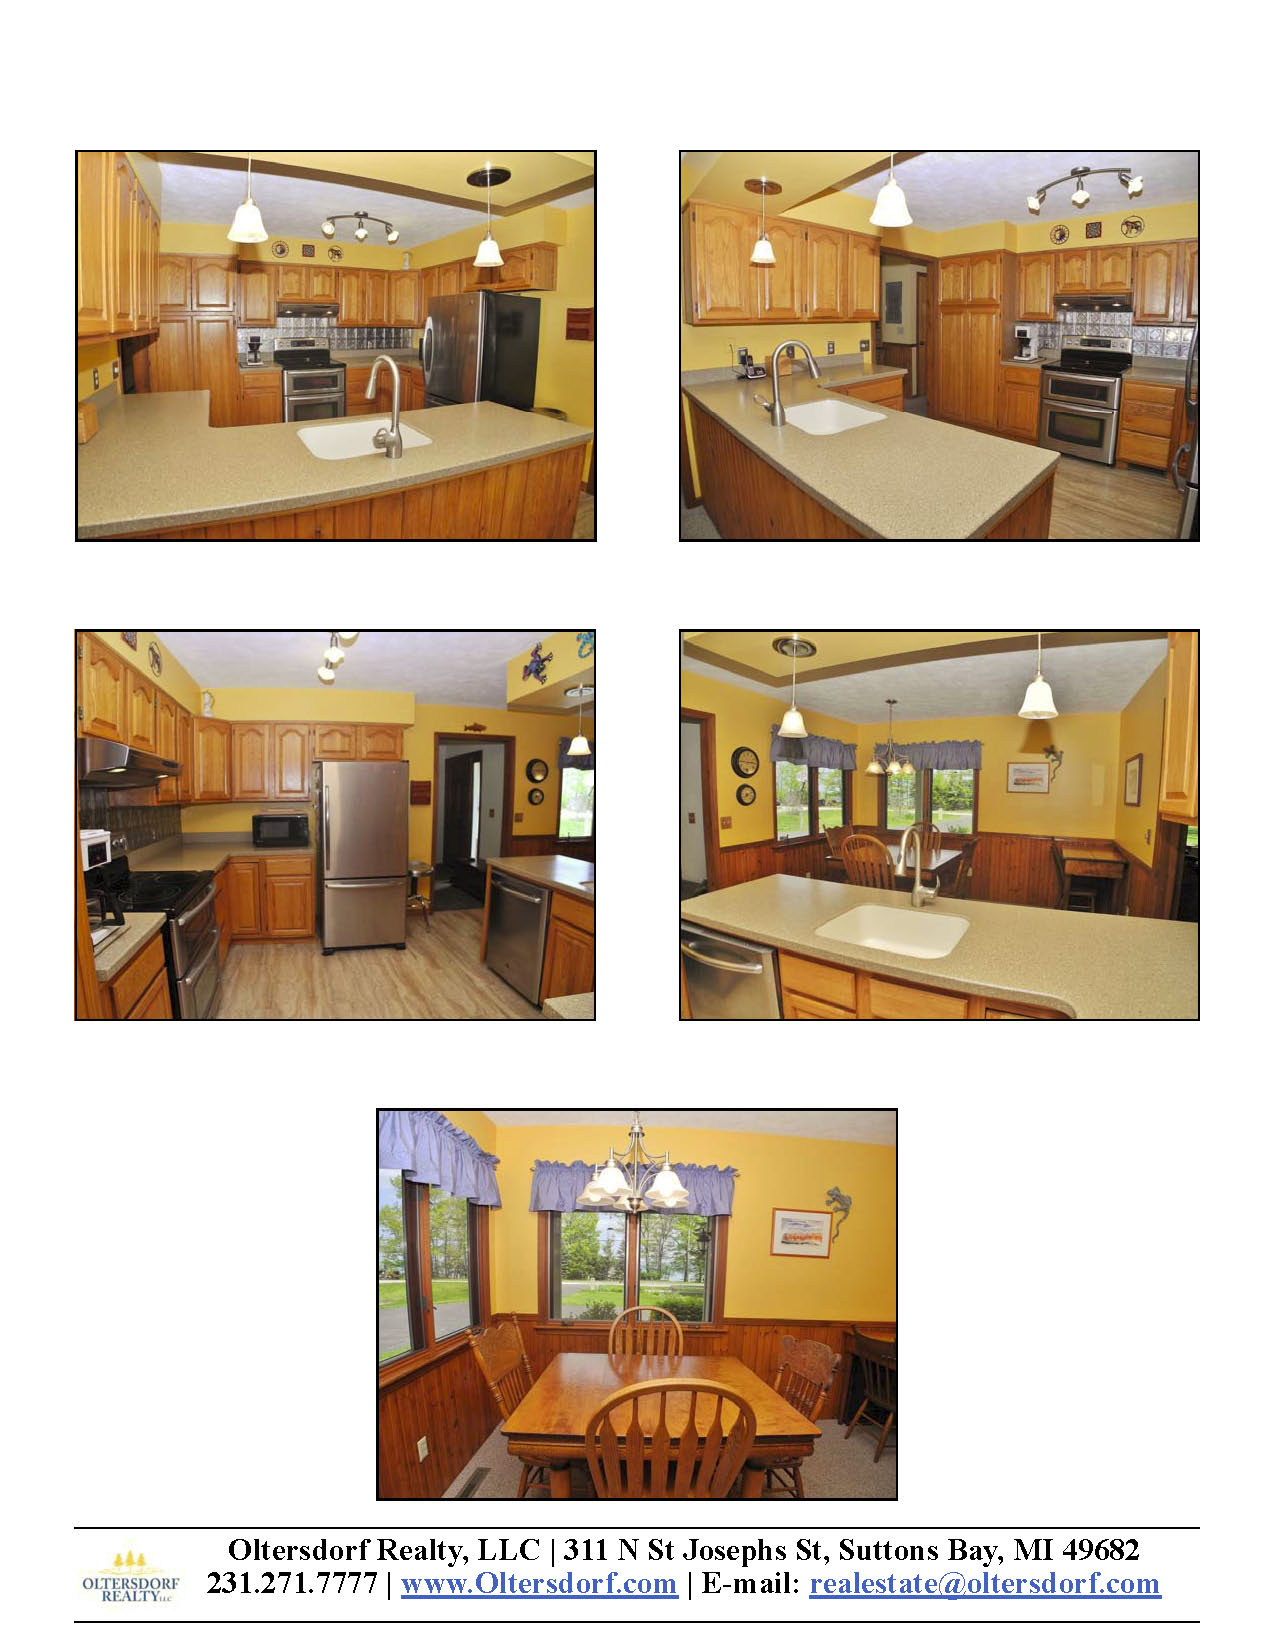 10142 S West Bay Shore Drive, Traverse City, MI - For sale by Oltersdorf Realty LLC - Marketing Packet (5).jpg